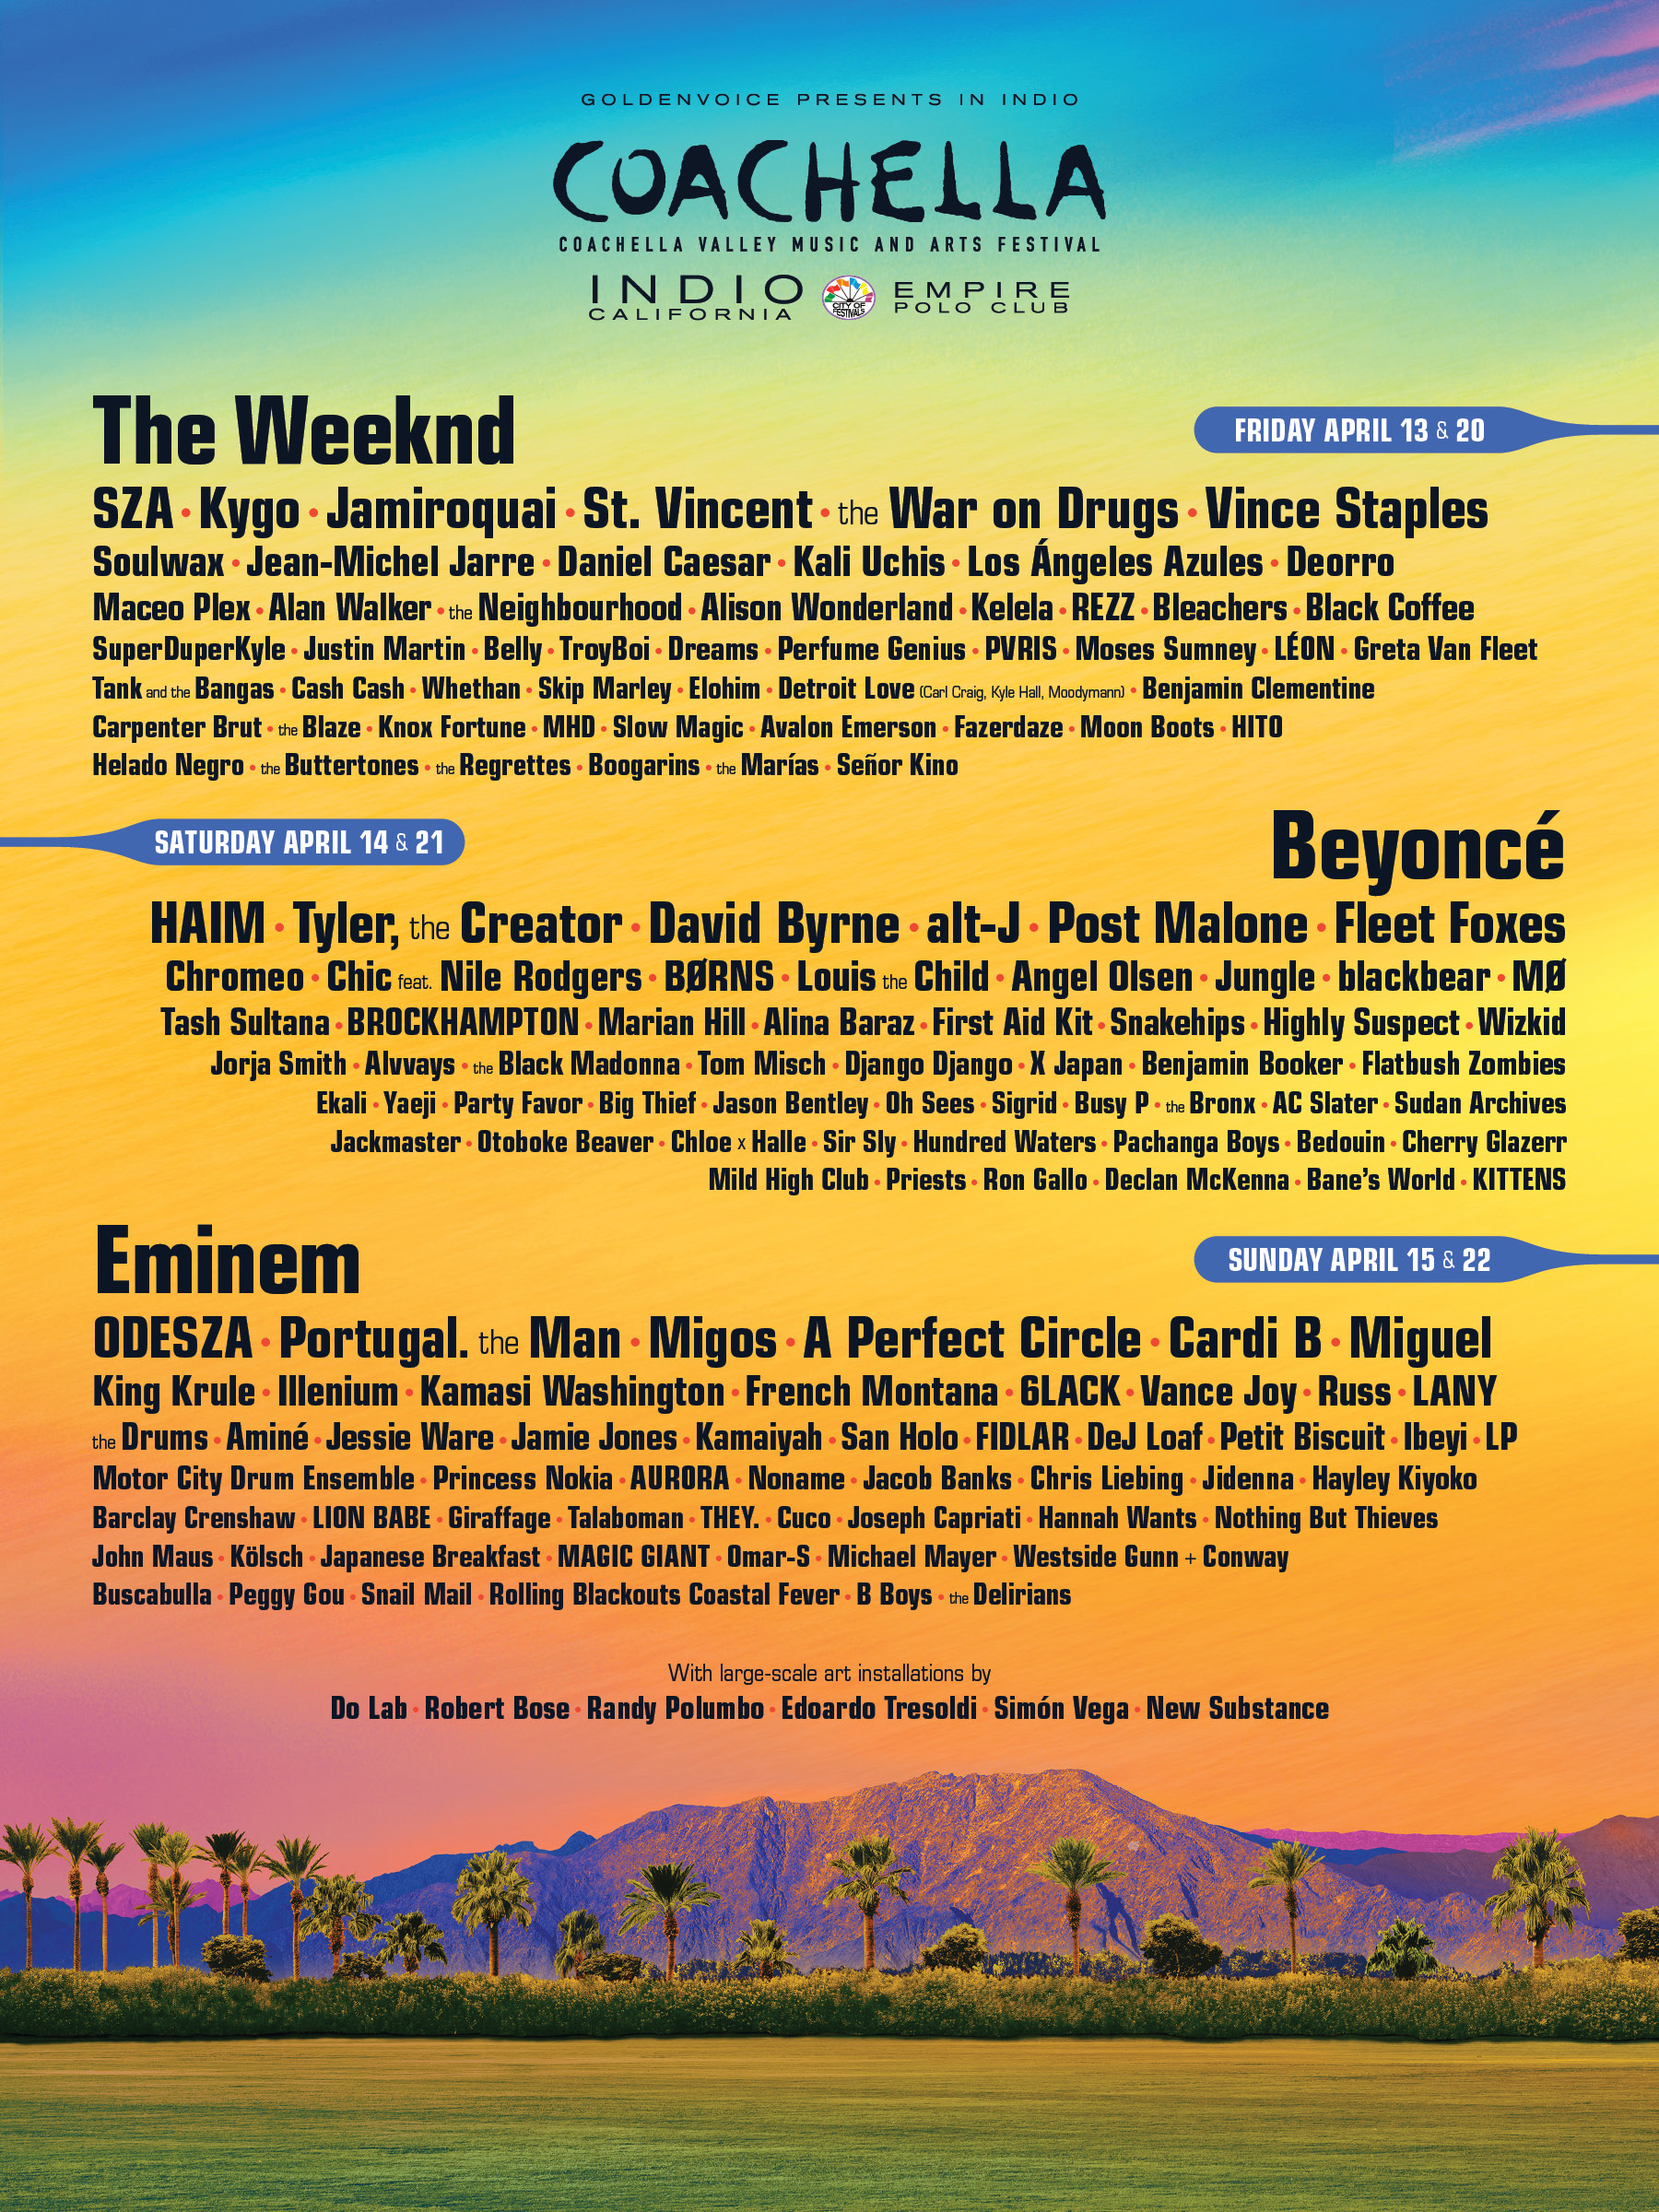 Coachella 2018 lineup revealed